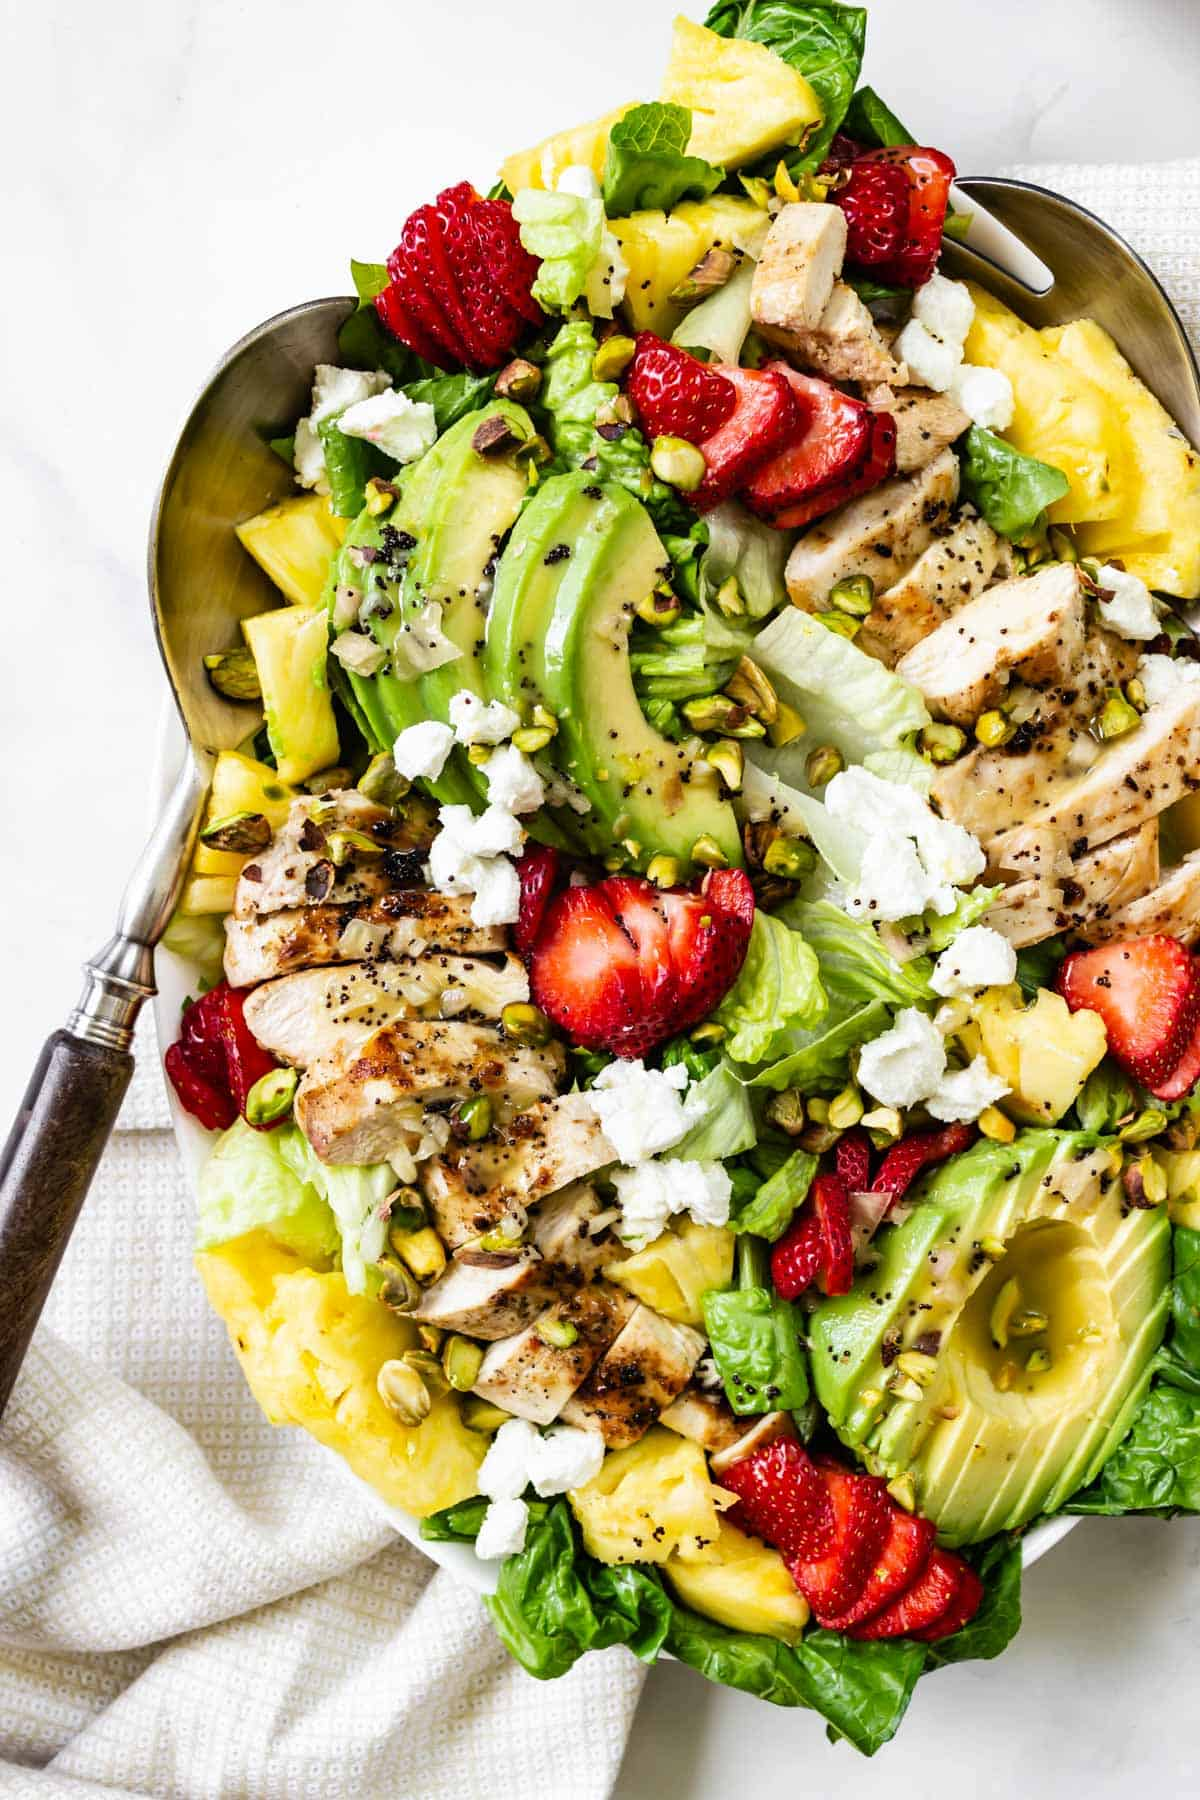 A salad loaded with pineapple, strawberries, grilled chicken, and avocado.